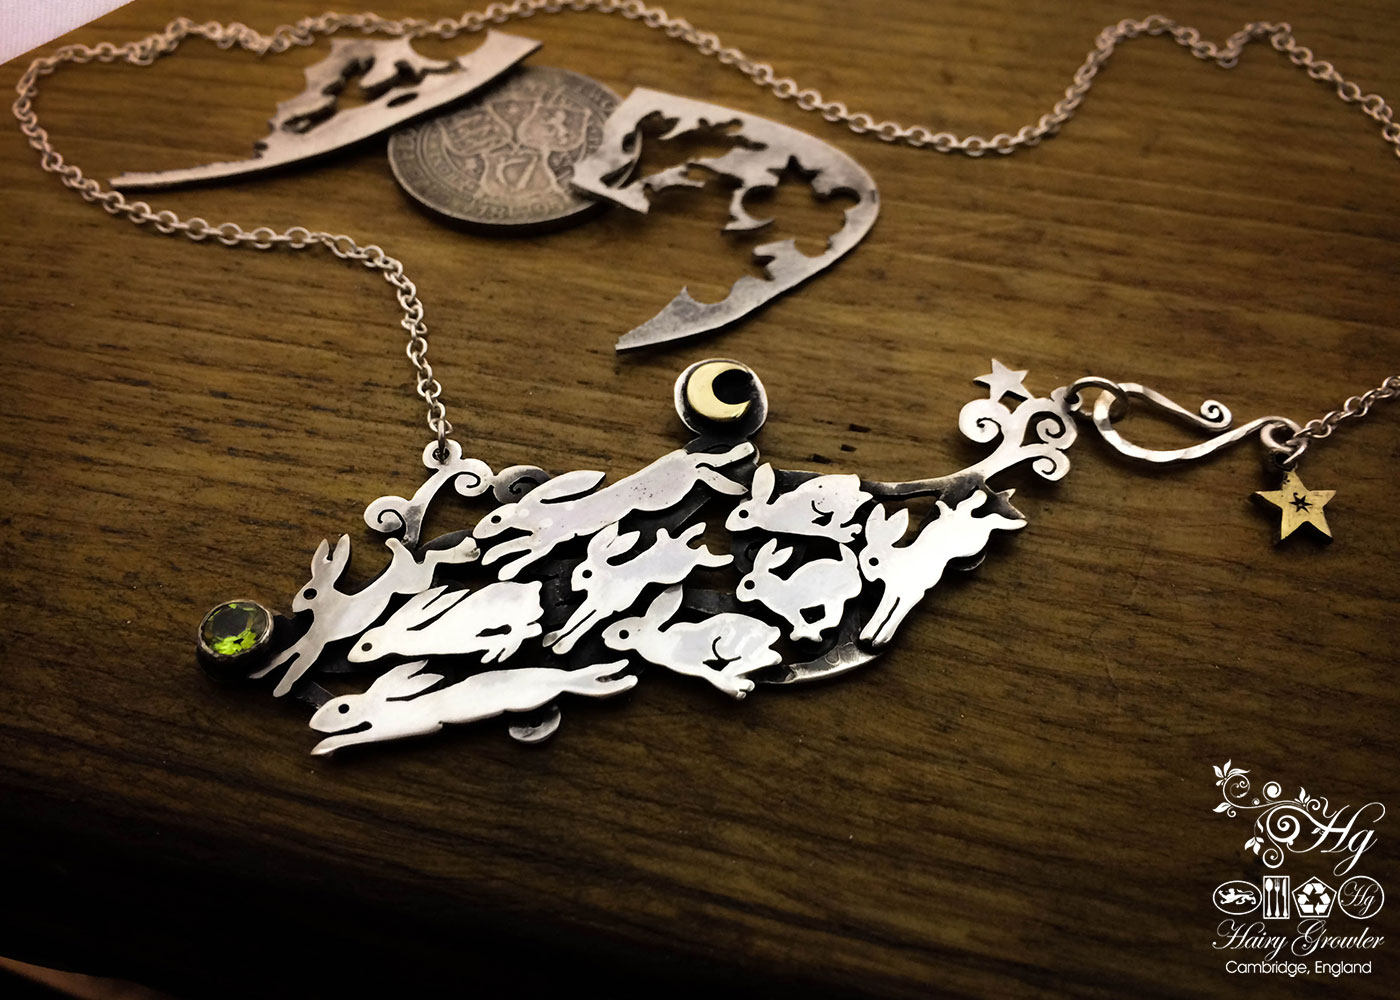 'Escape from Efrafa' leaping lapin handcrafted and unique silver necklace